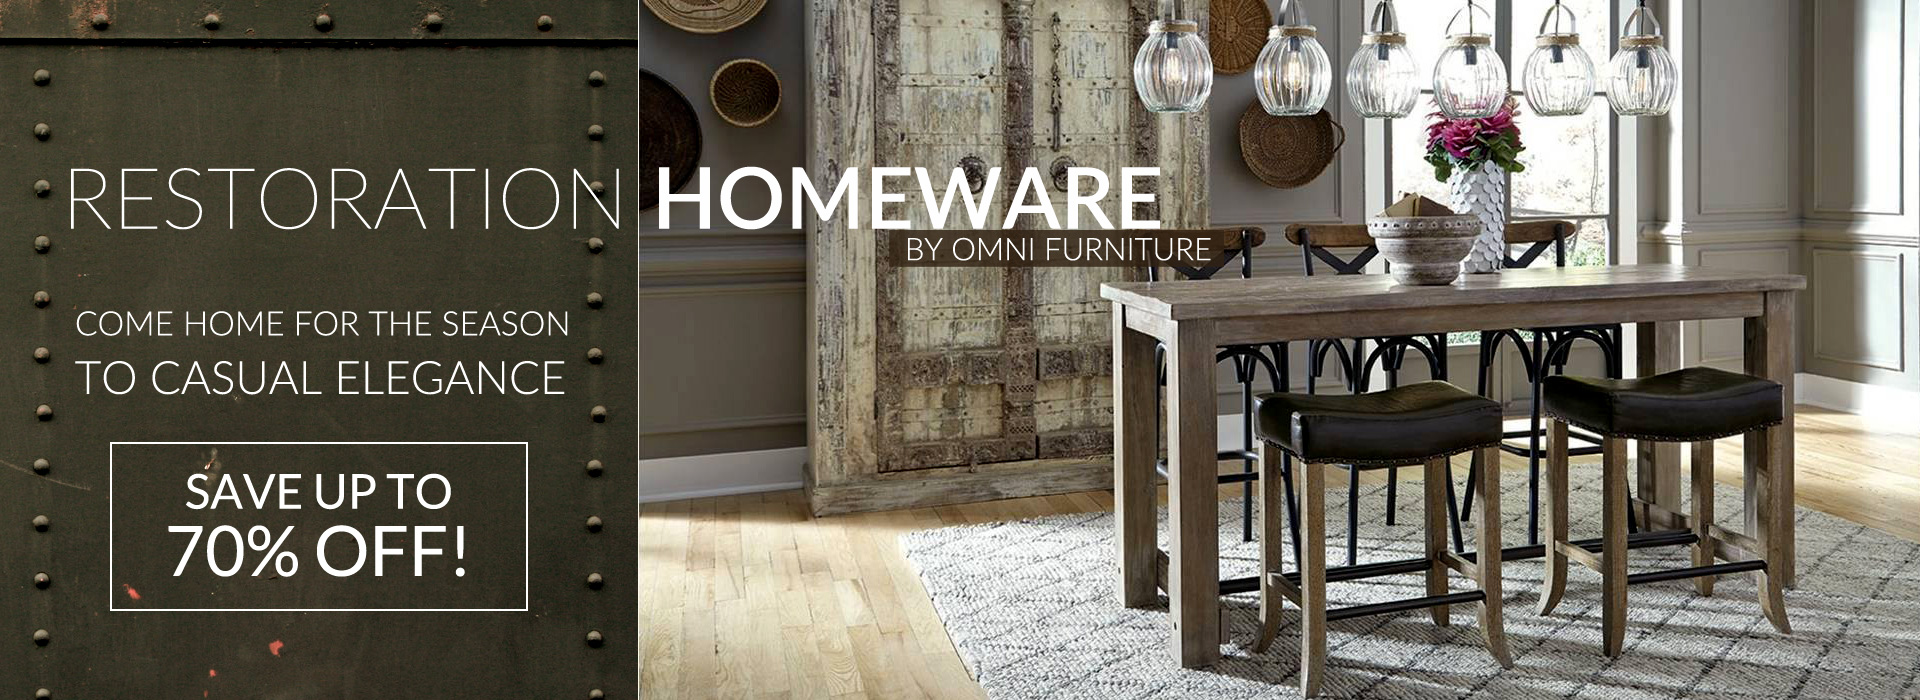 Restoration Homeware